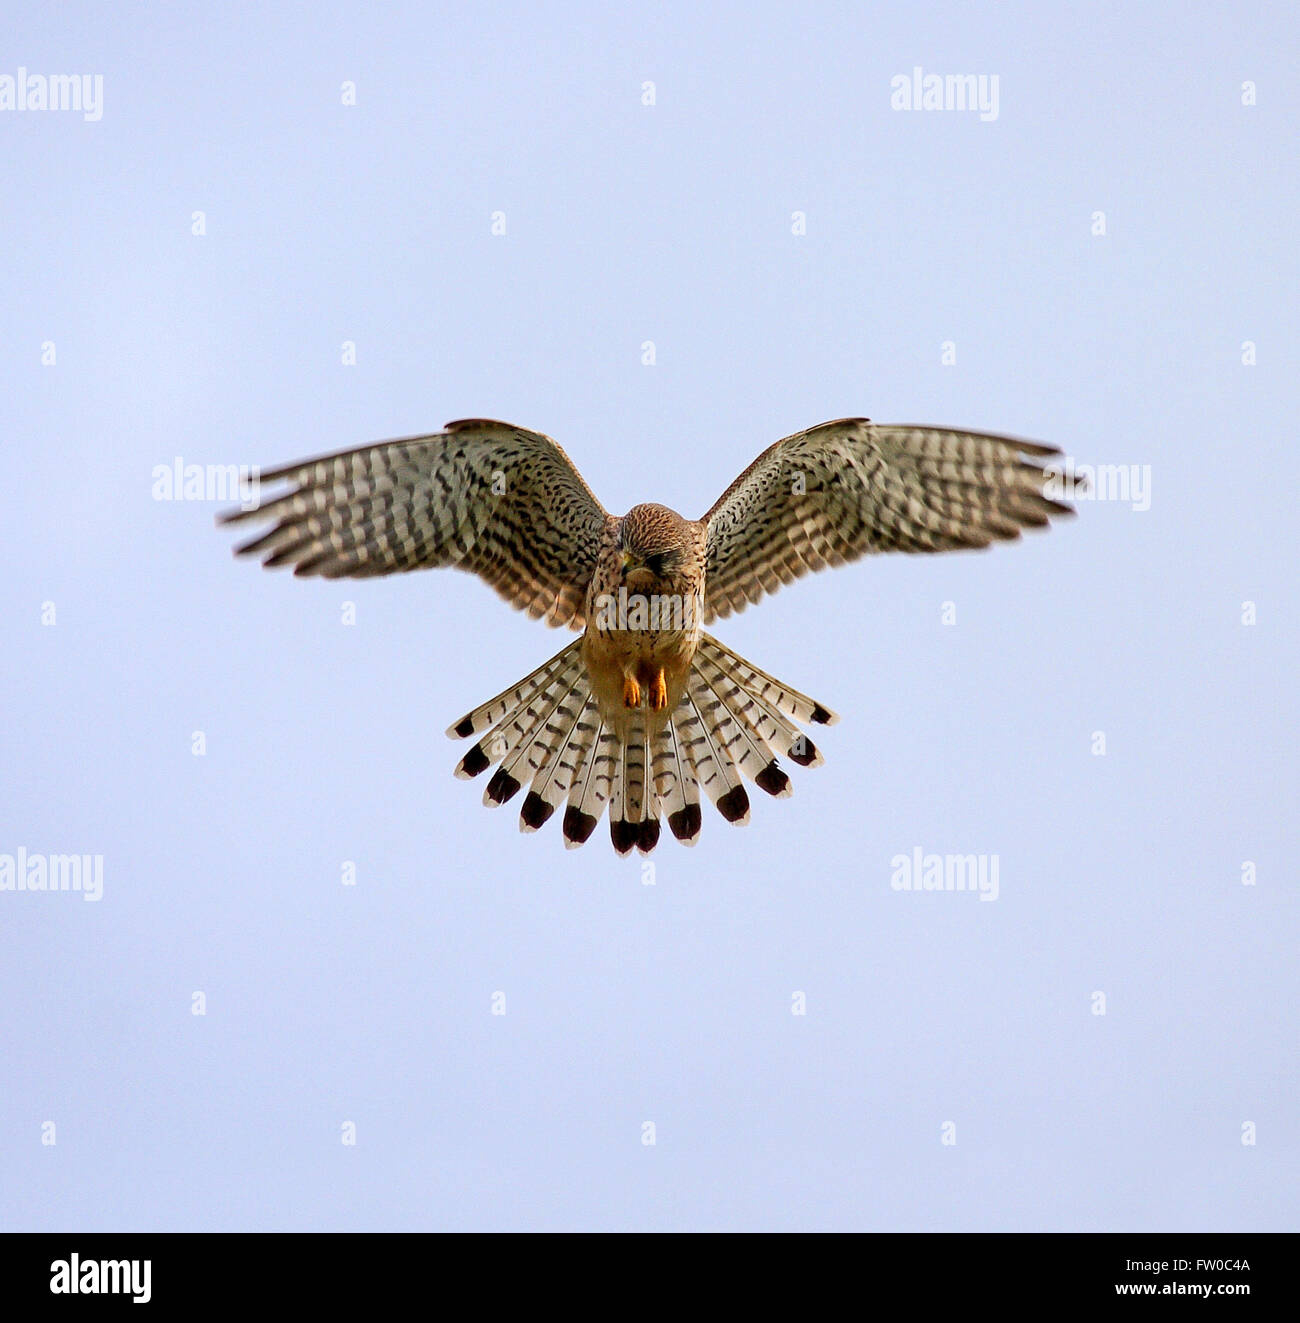 falcon-hovering-looking-for-food-isle-of-wight-hampshire-FW0C4A.jpg